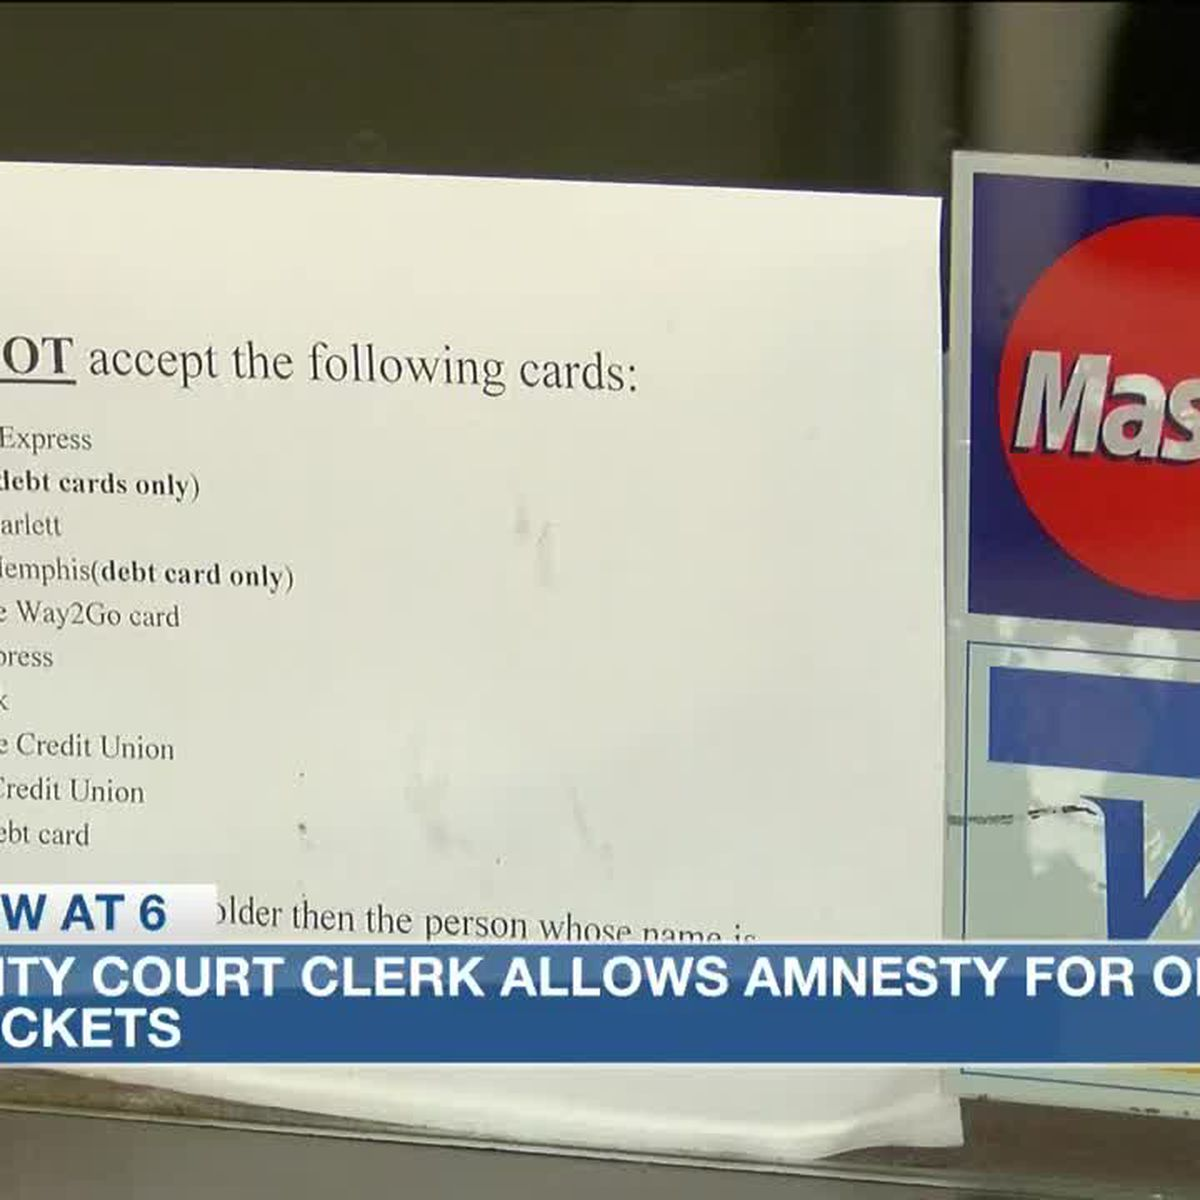 City Court Clerk allows amnesty for outstanding tickets